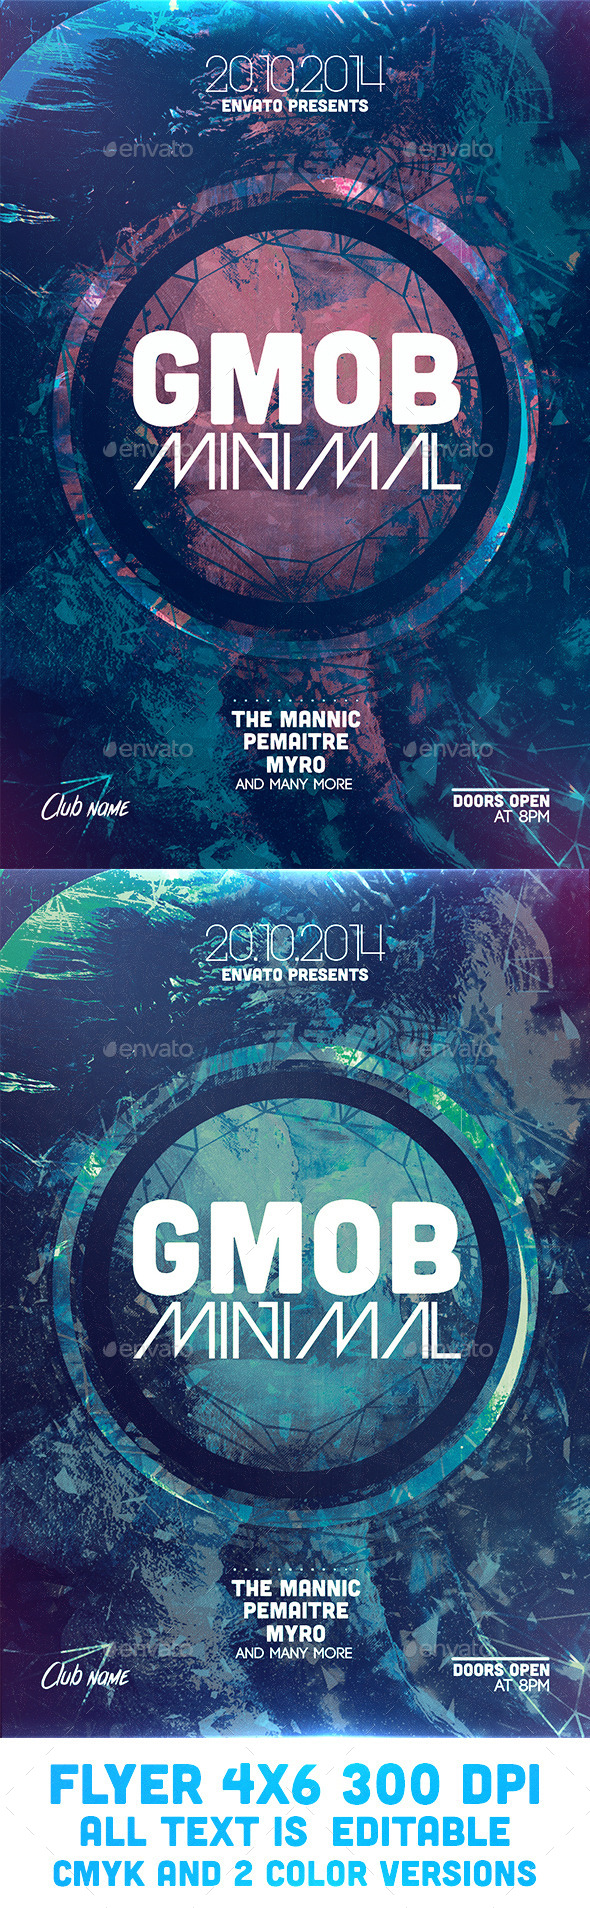 GraphicRiver GMOB Minimal Flyer Template 9263824